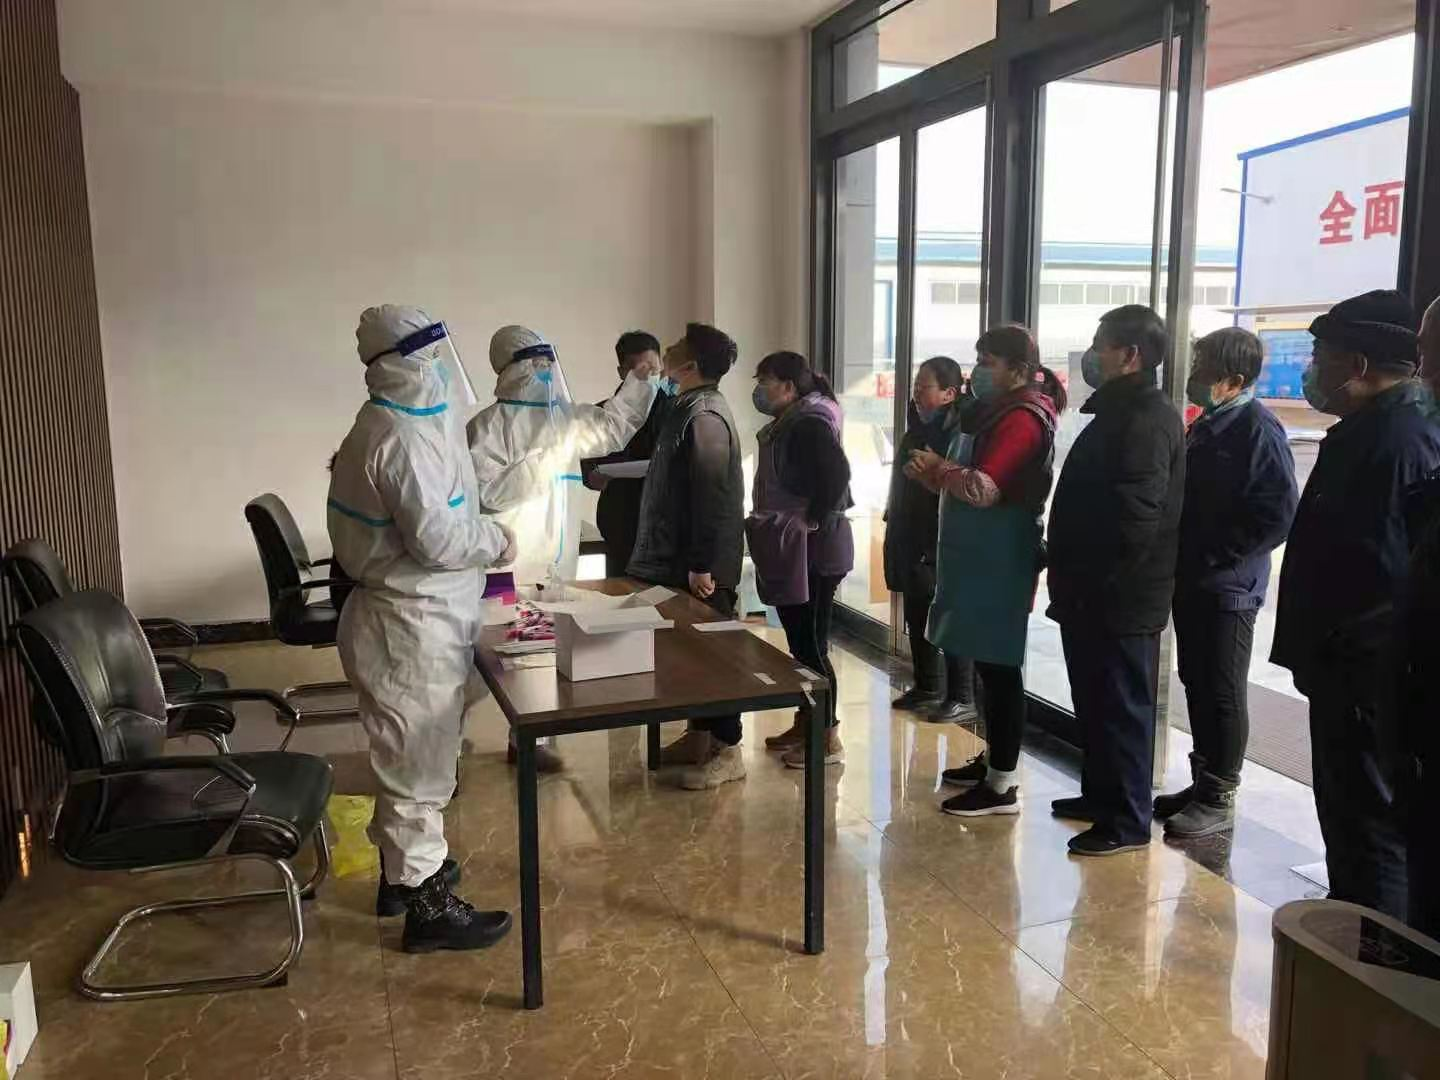 On 11 - 18th Jan, 2021, Hebei province has appeared Coronavirus cases, our government attaches great attention to it.